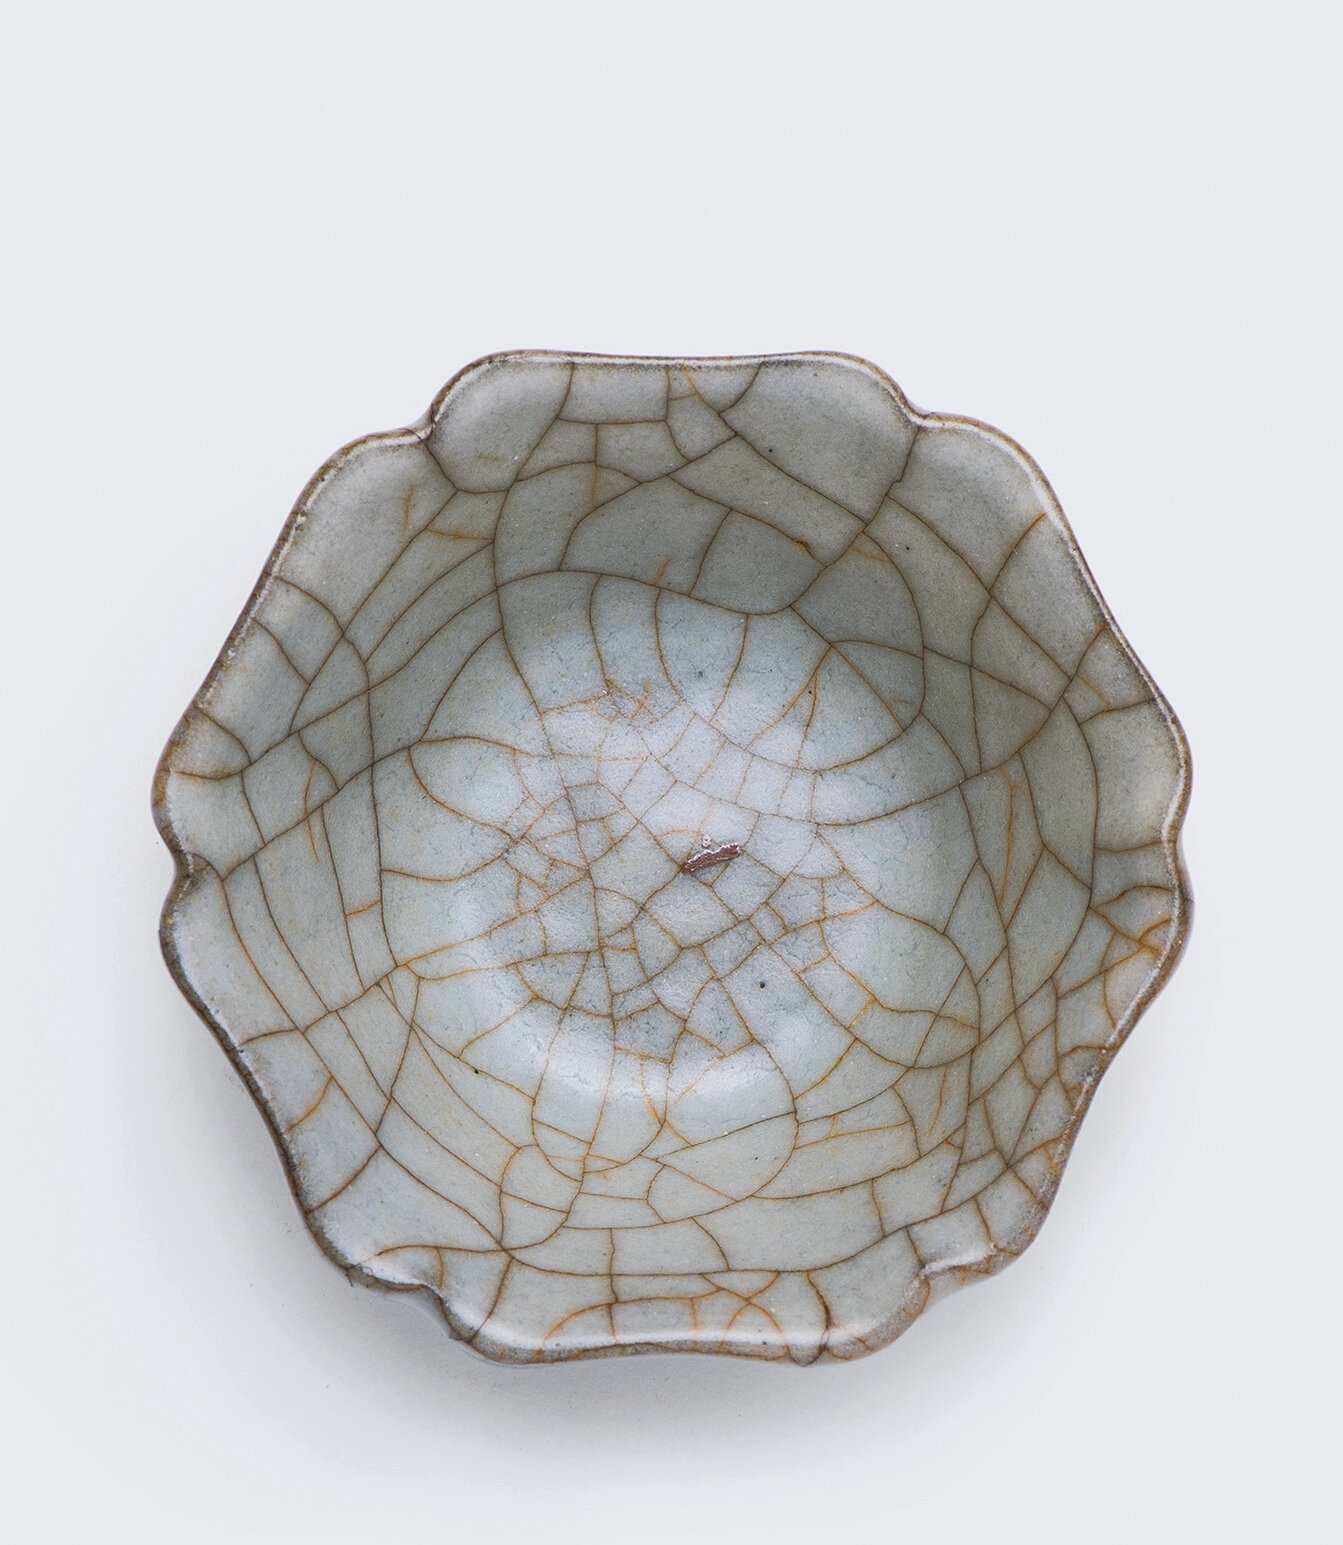 A rare Guan-type flower-shaped cup, Yuan-Ming dynasty (1271-1644)